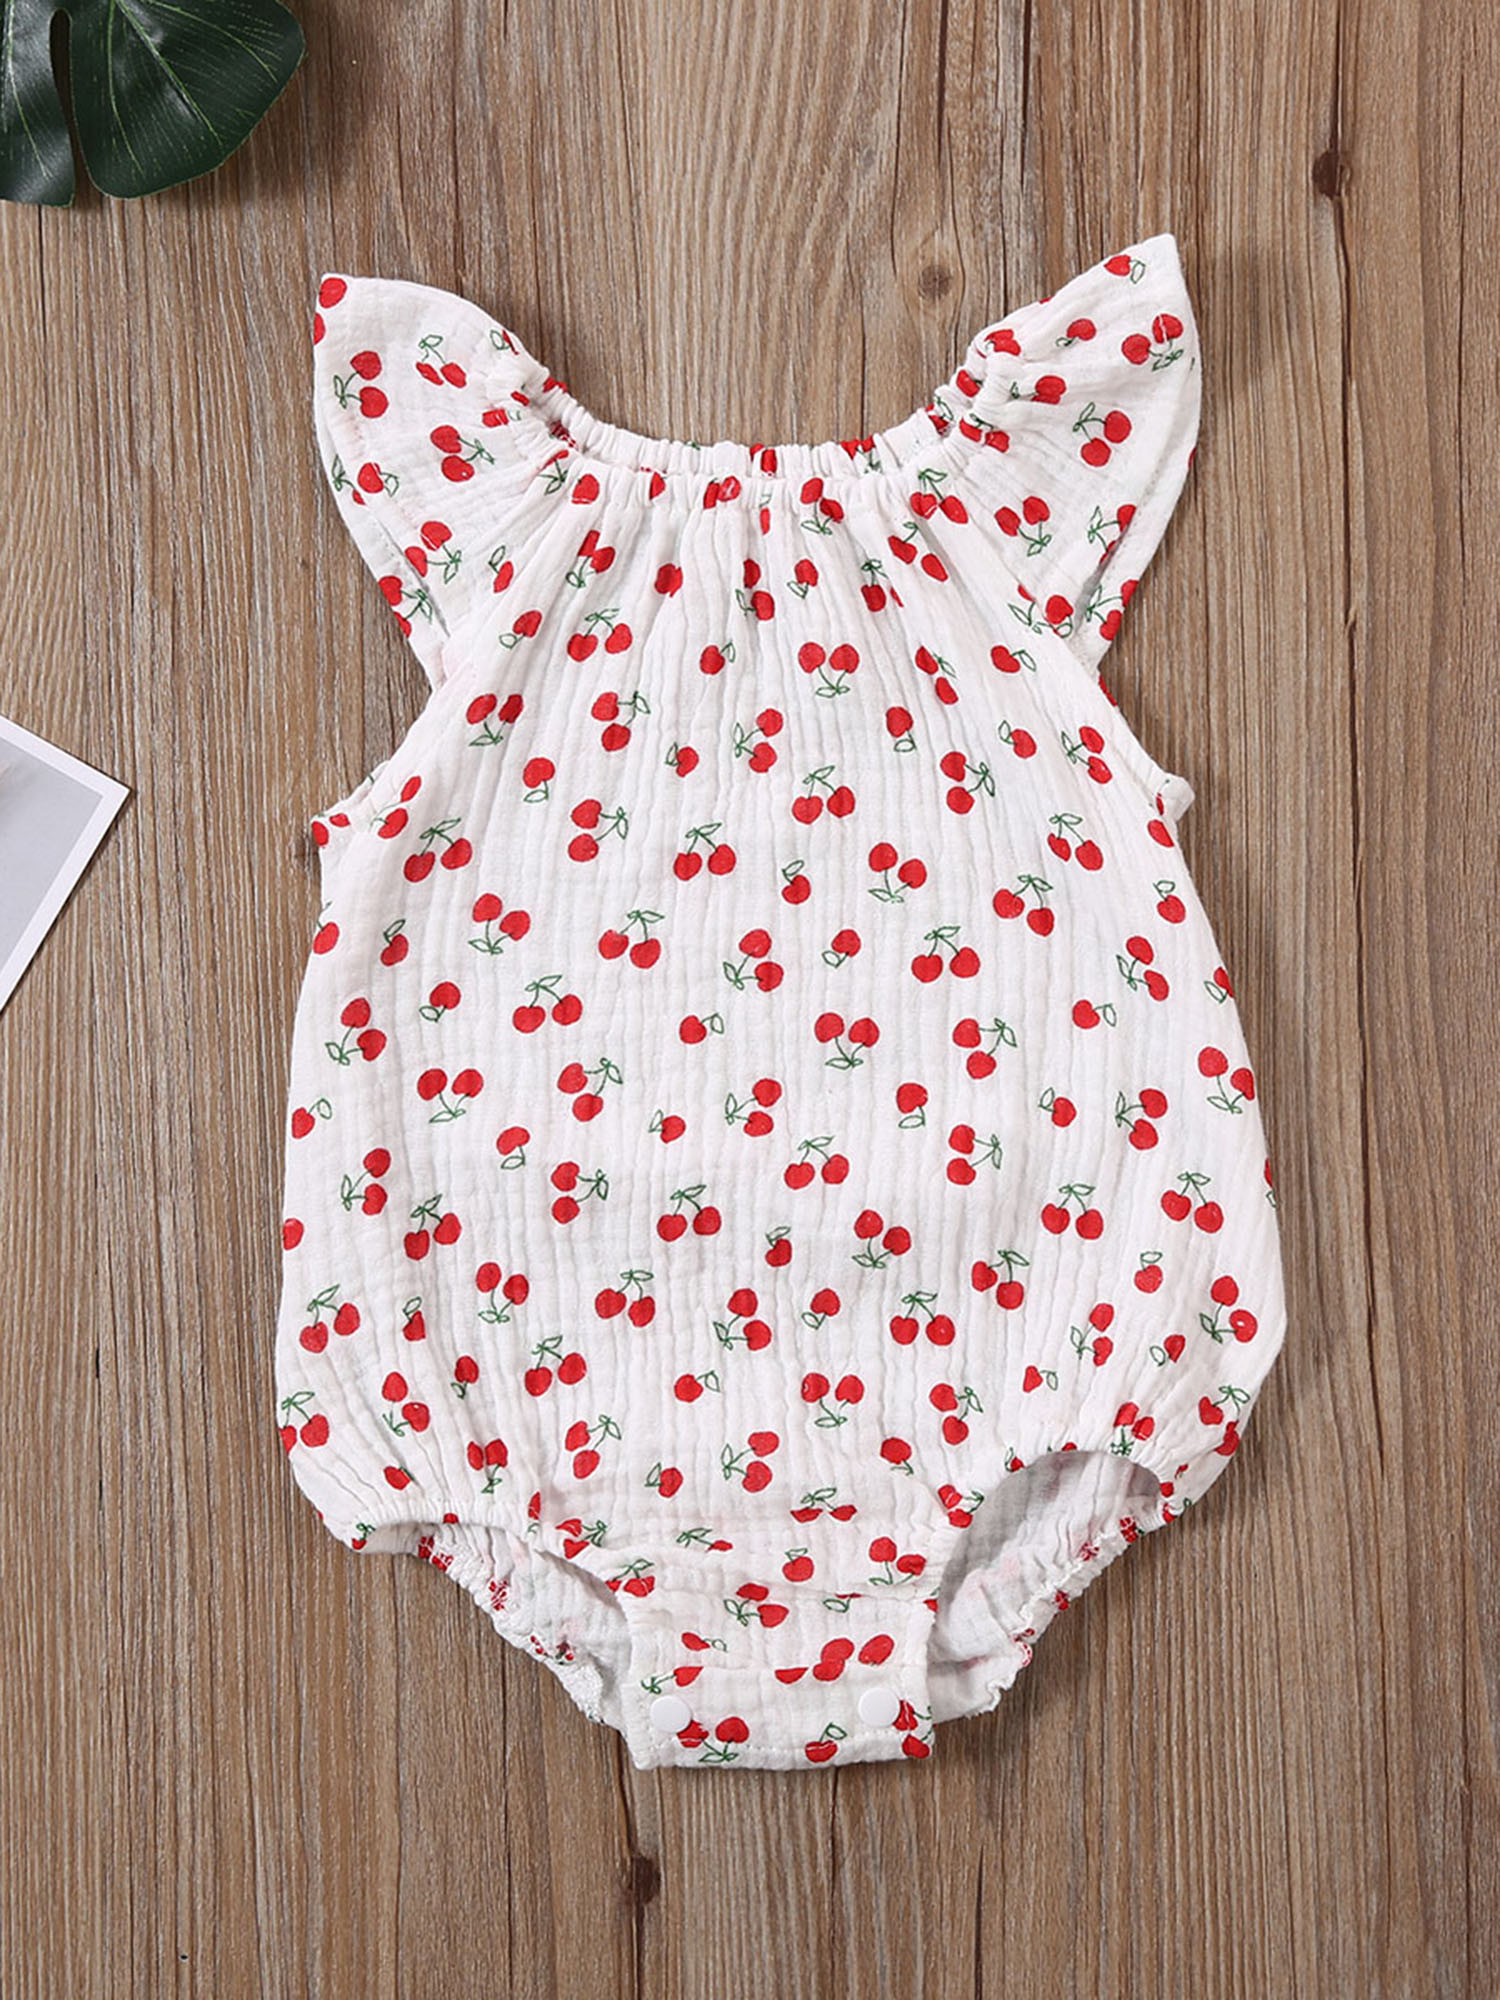 Pudcoco Newborn Baby Boy Girl Clothes Summer Print Fly Sleeve Knitted Cotton Romper Jumpsuit One-Piece Outfit Sunsuit Clothes